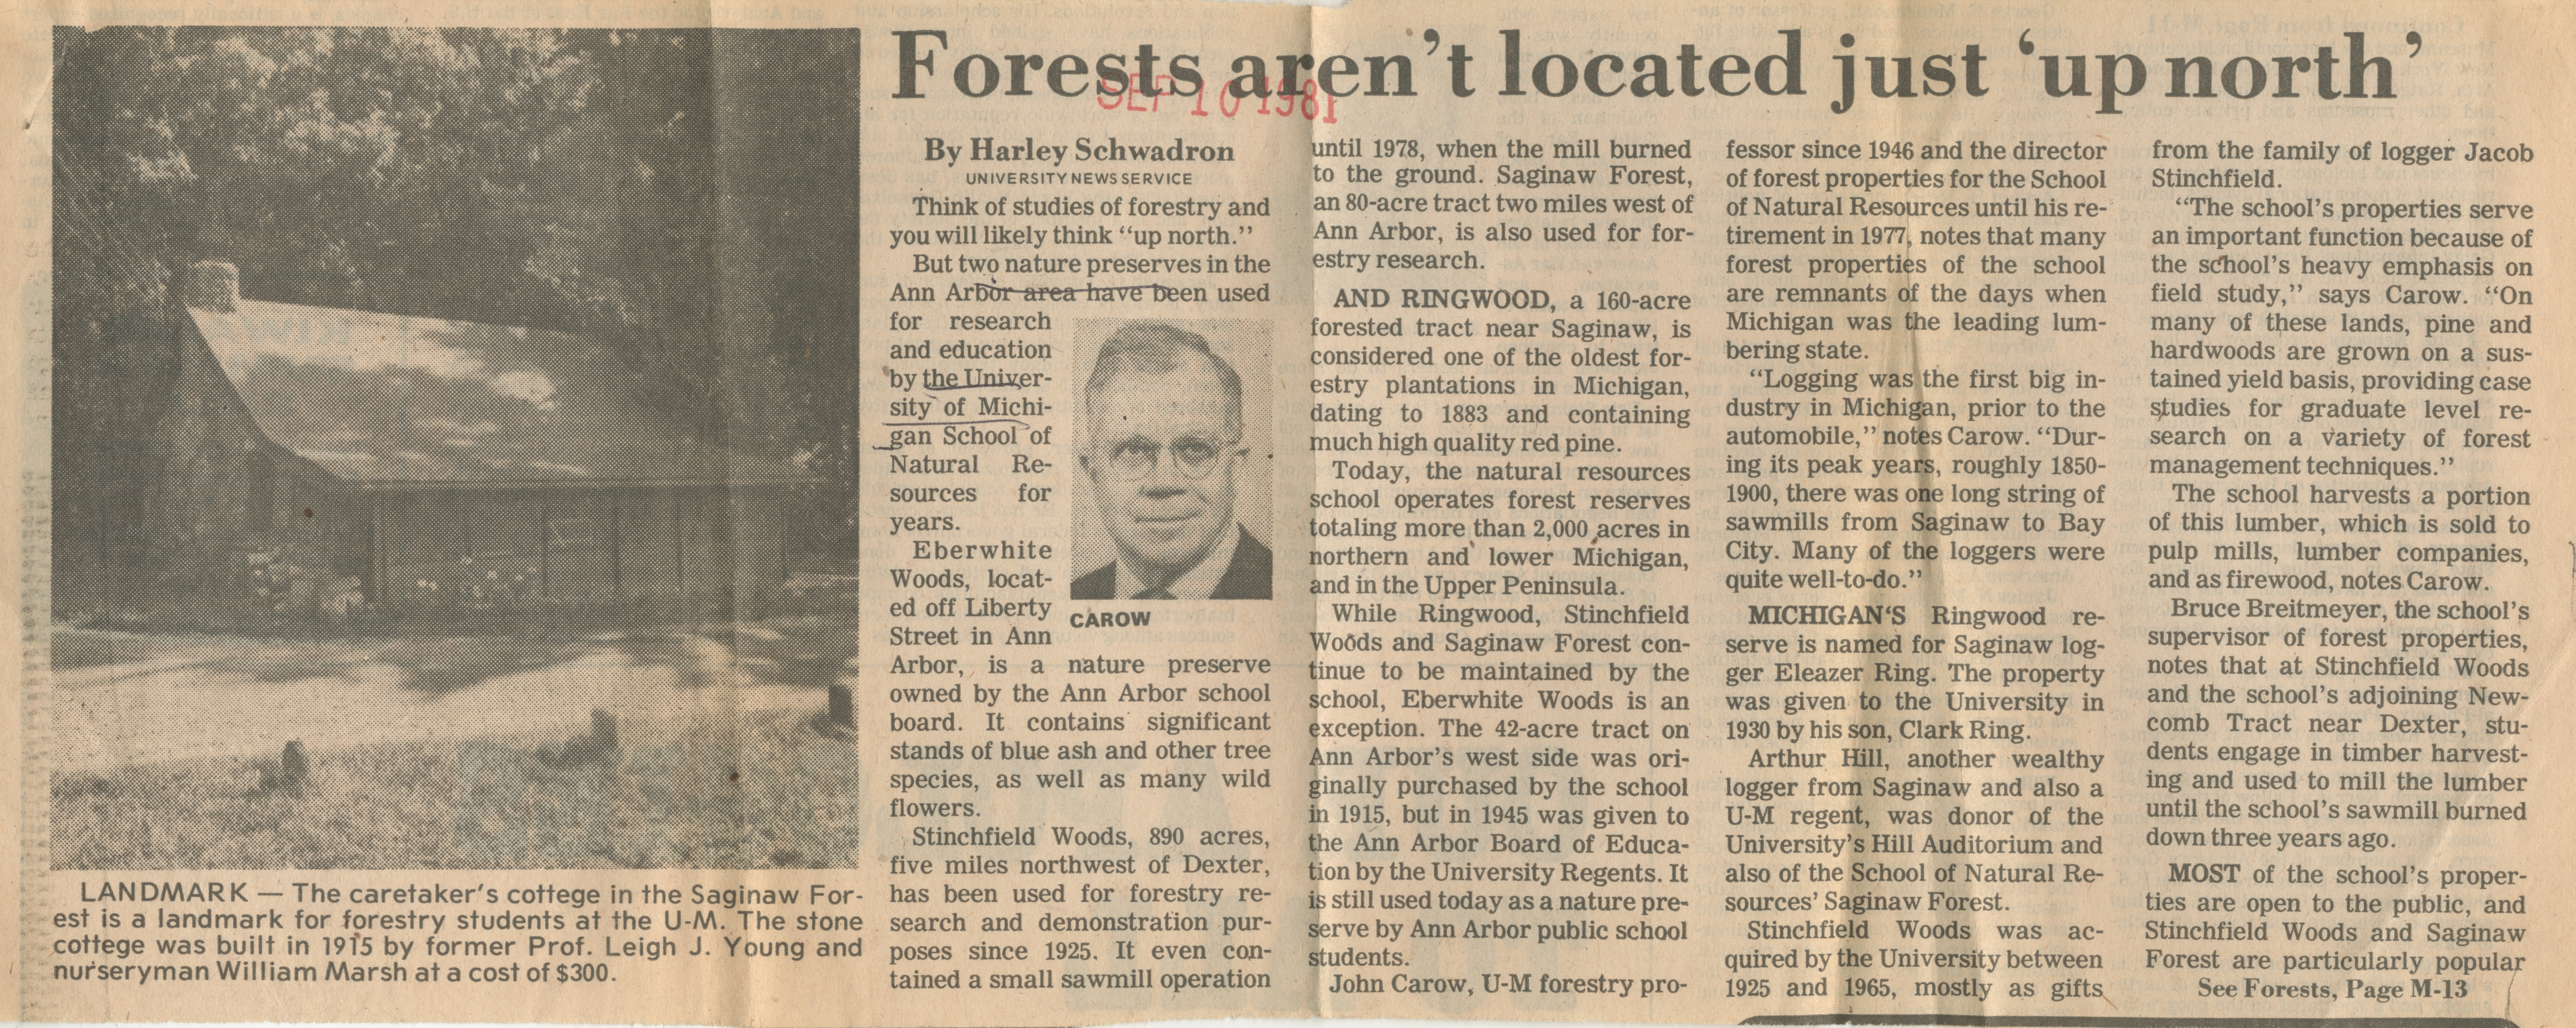 Forests aren't located just 'up north' image